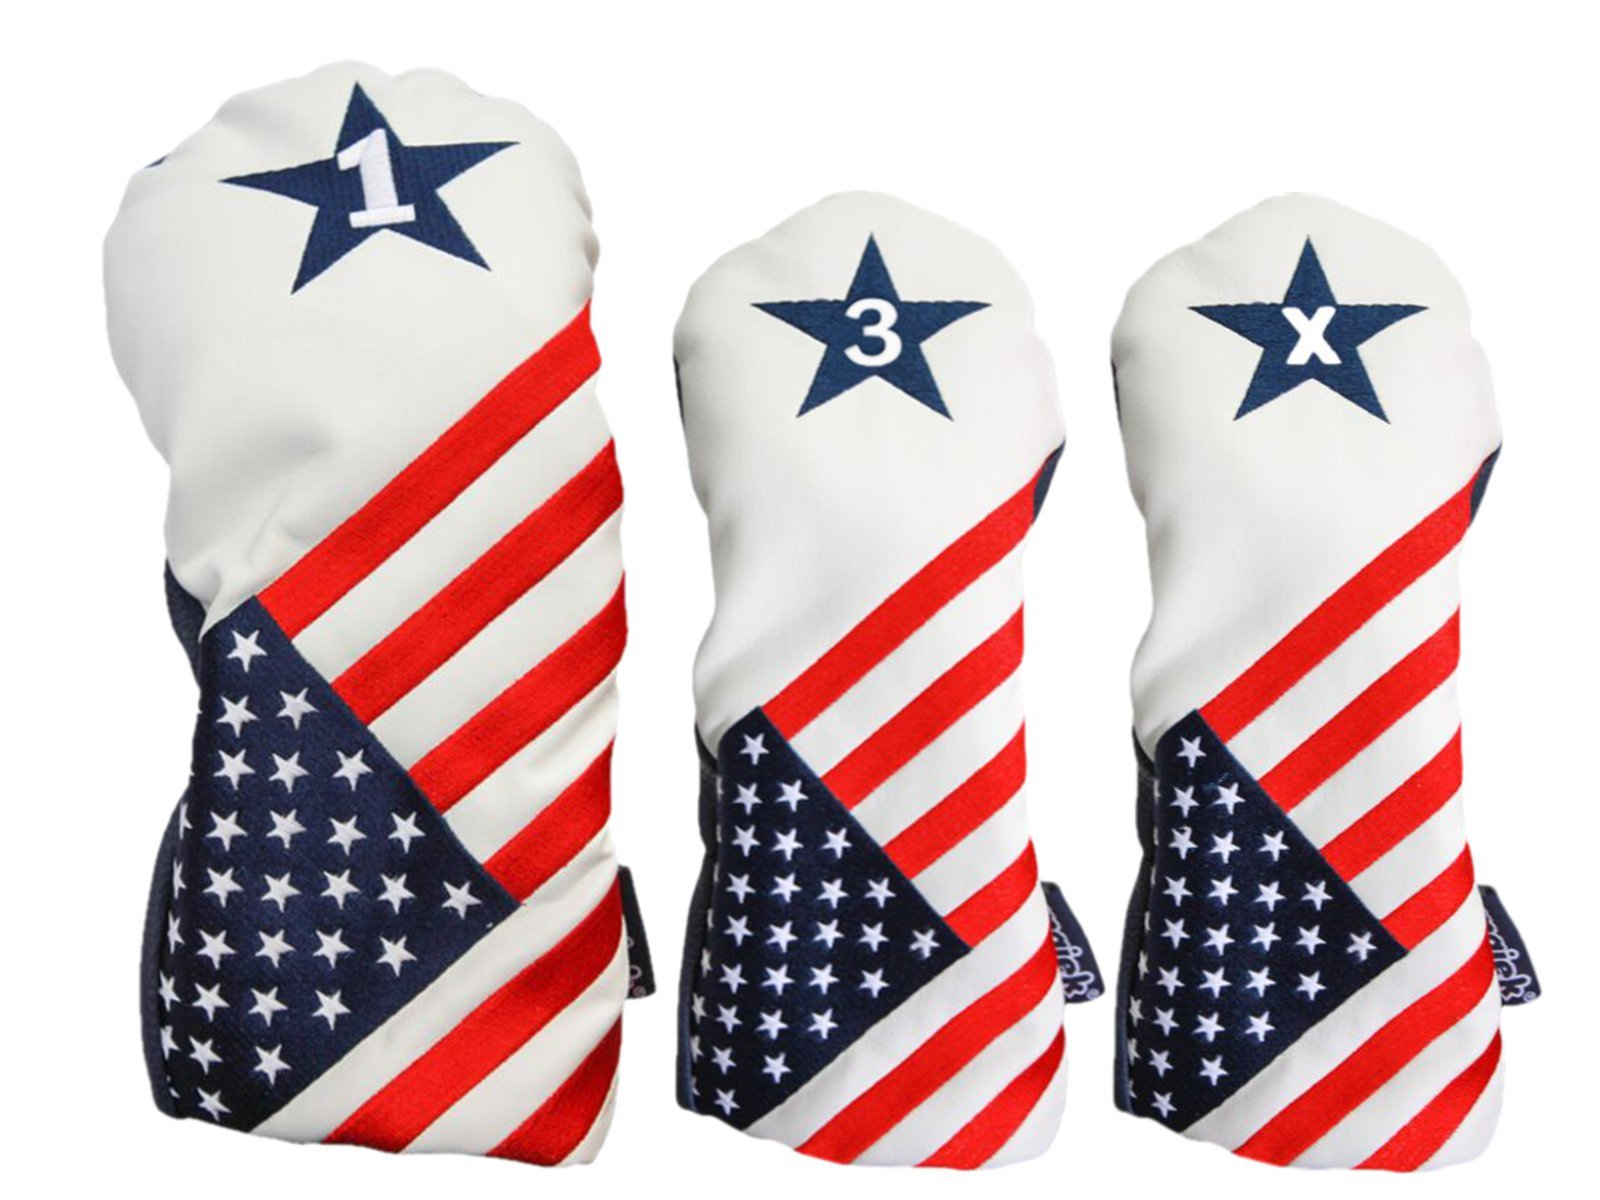 USA 1 3 X Golf Headcover Patriot Vintage Retro Patriotic Driver Fairway Wood Head Cover